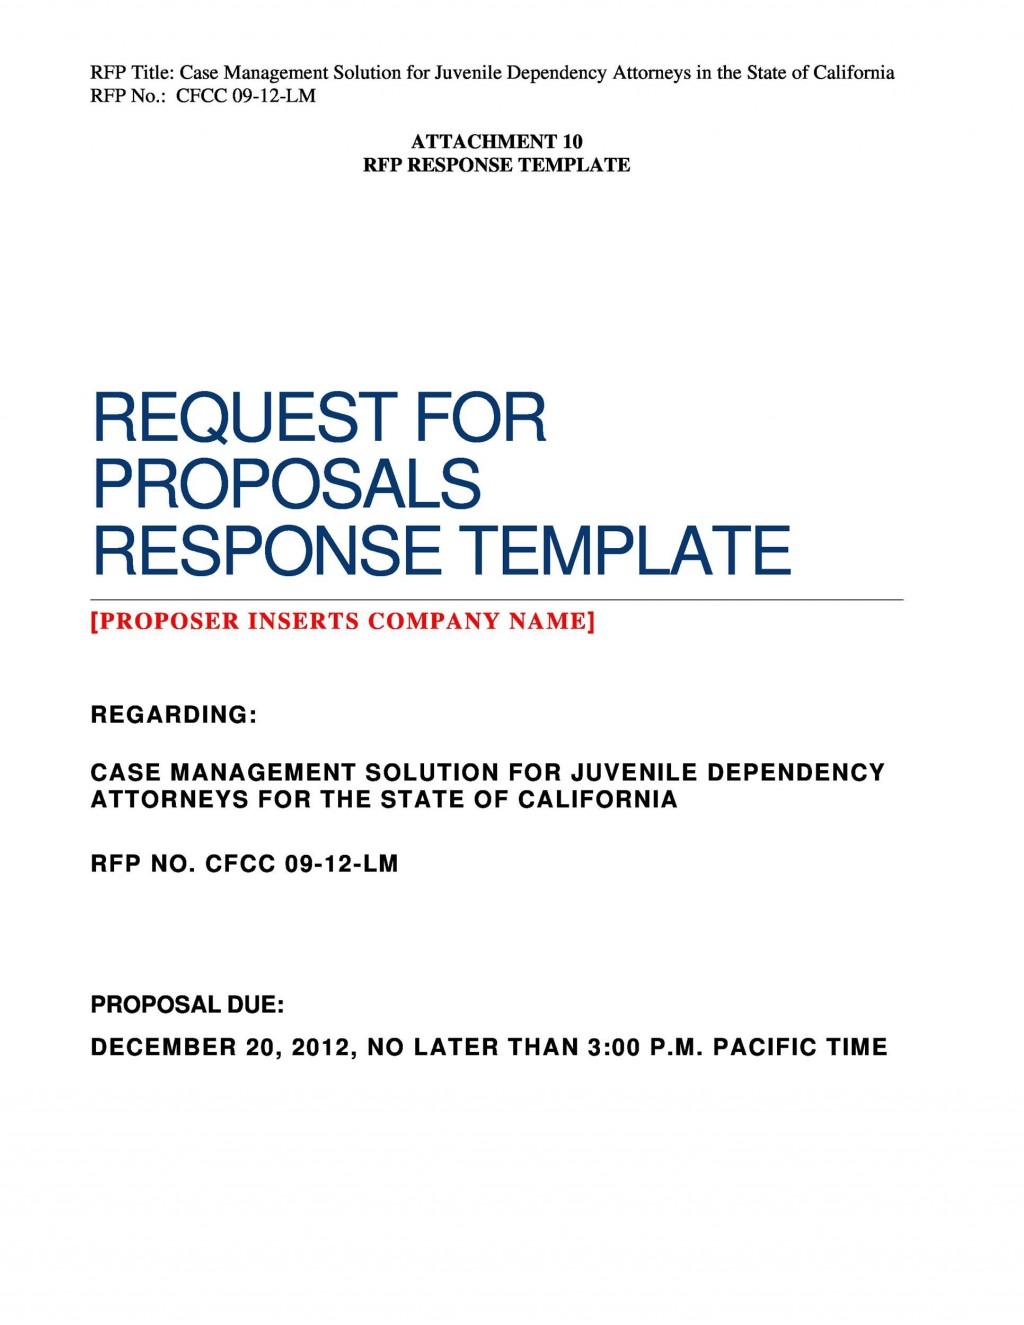 005 Imposing Request For Proposal Response Word Template Design Large